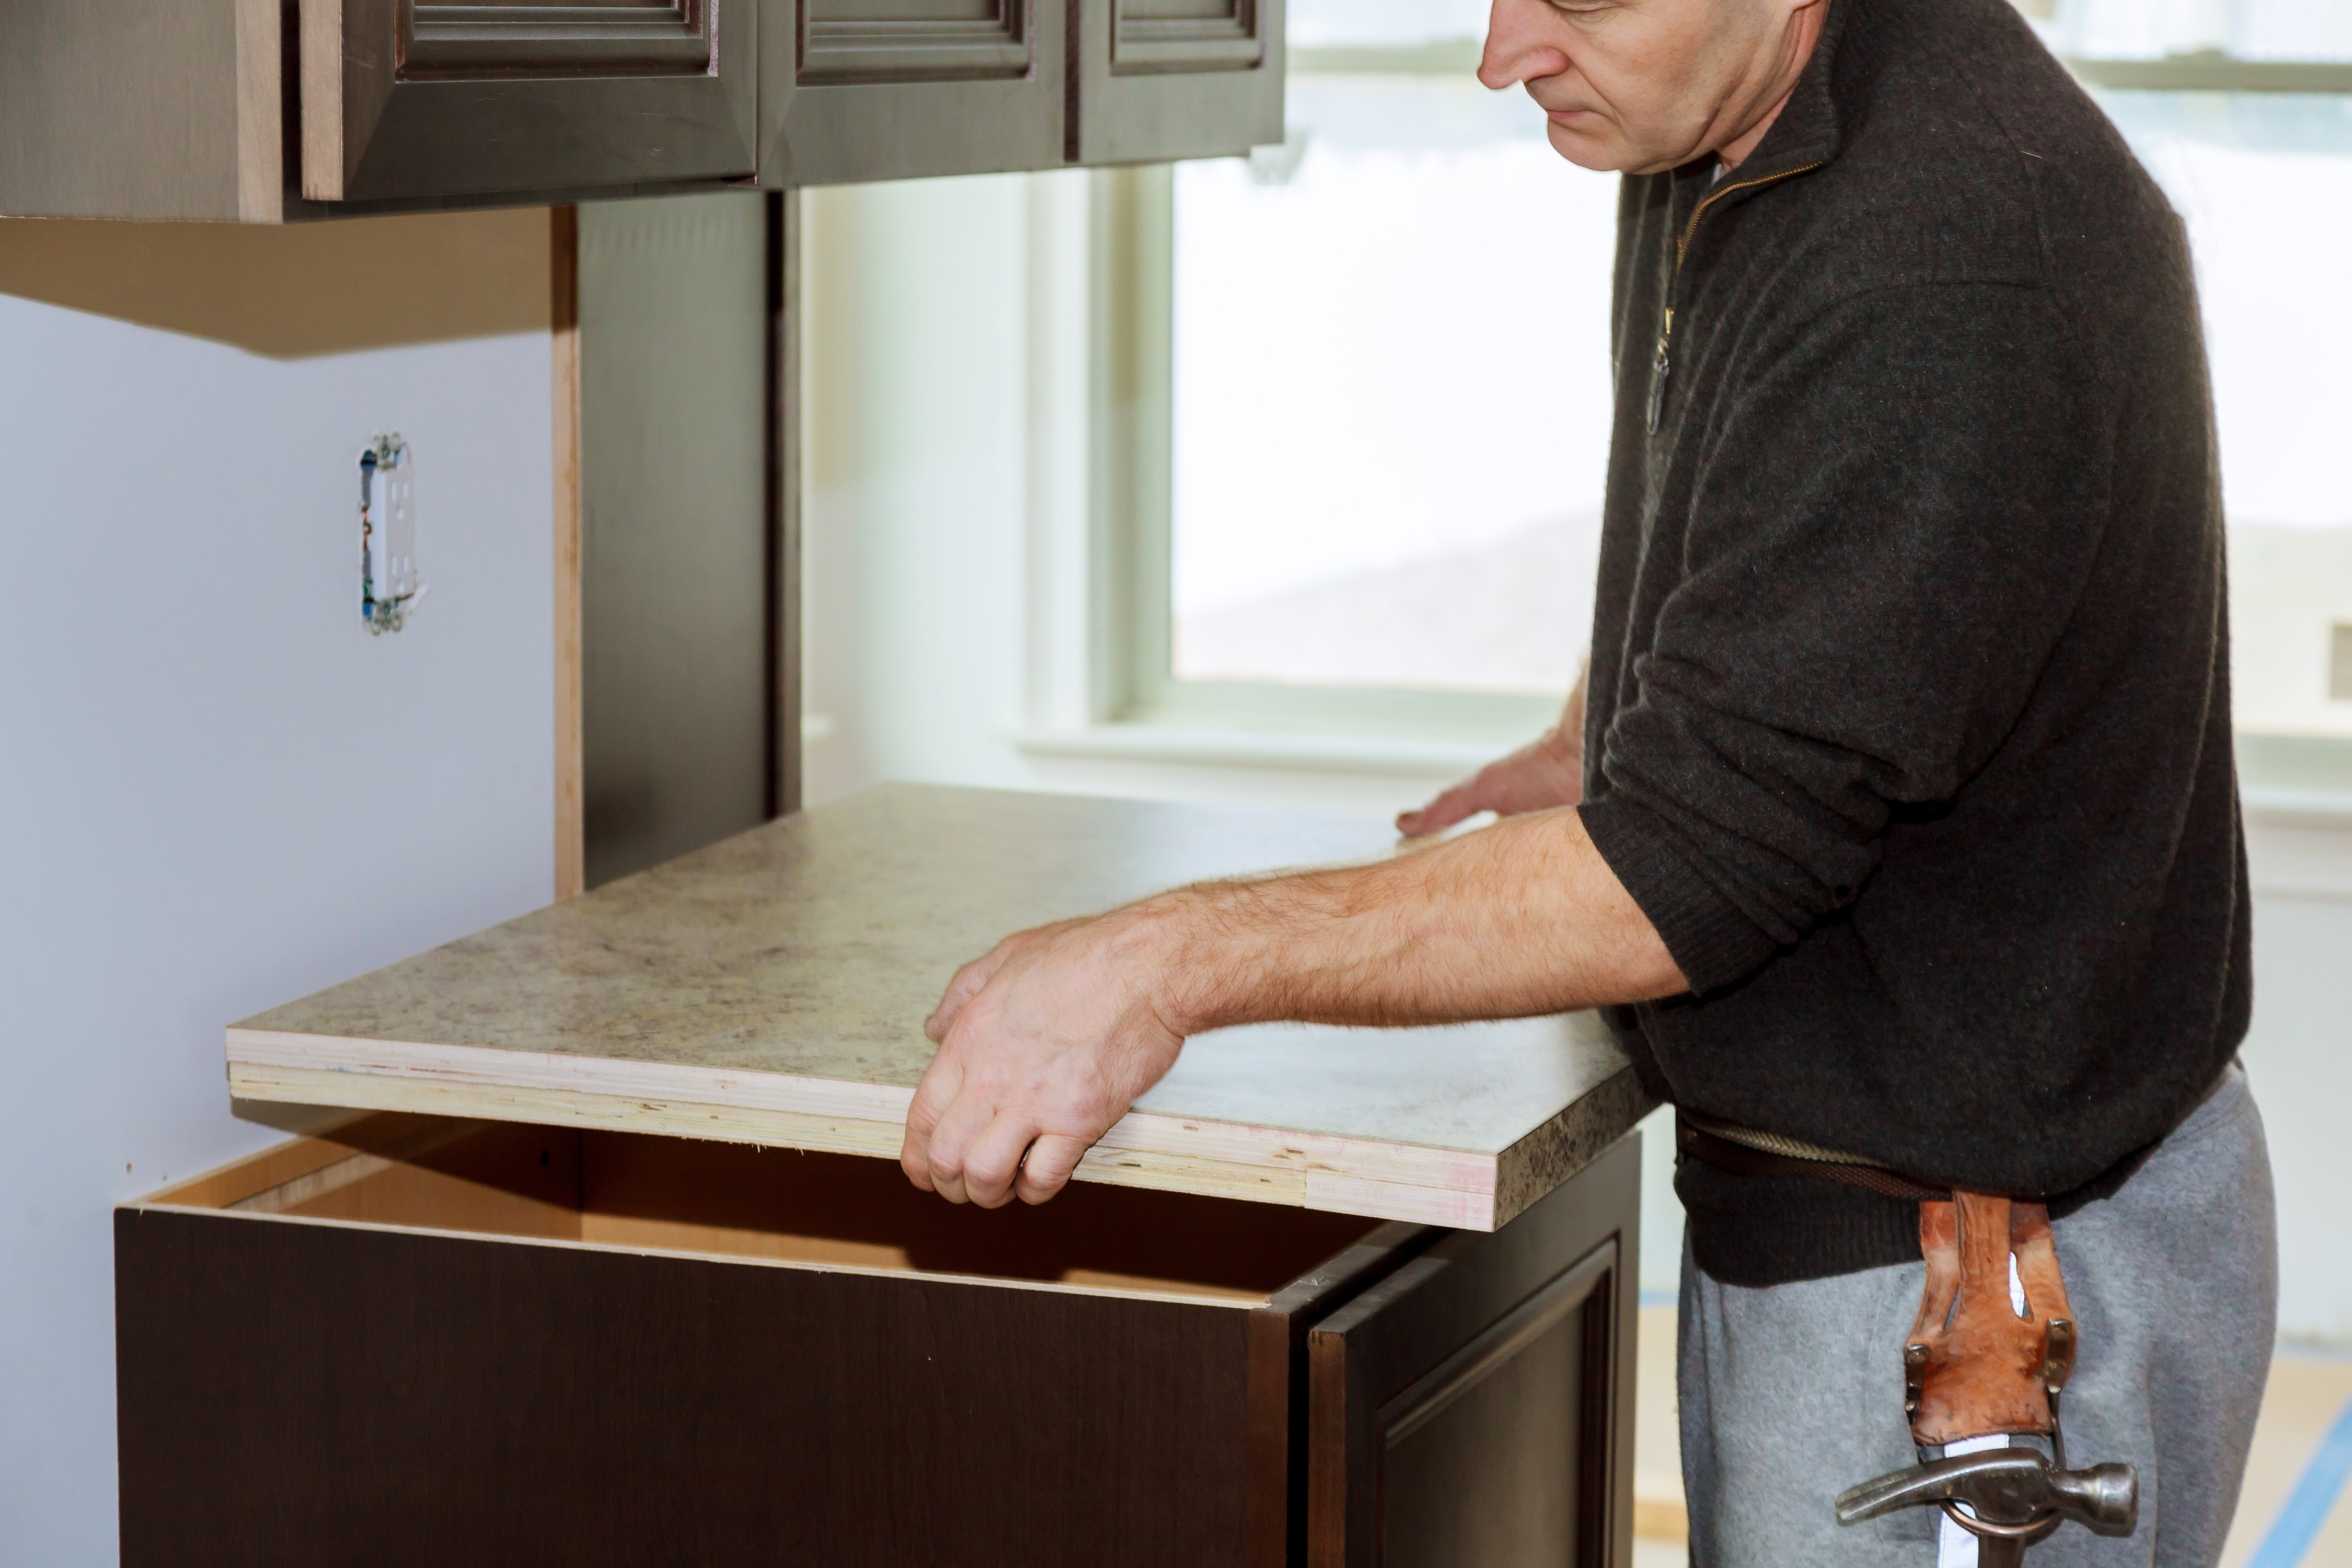 If You Re Upgrading Laminate Surfaces Or Adding Solid Surface Countertops To Your Home These Are Certainly Well Within The Skillset Of Most People